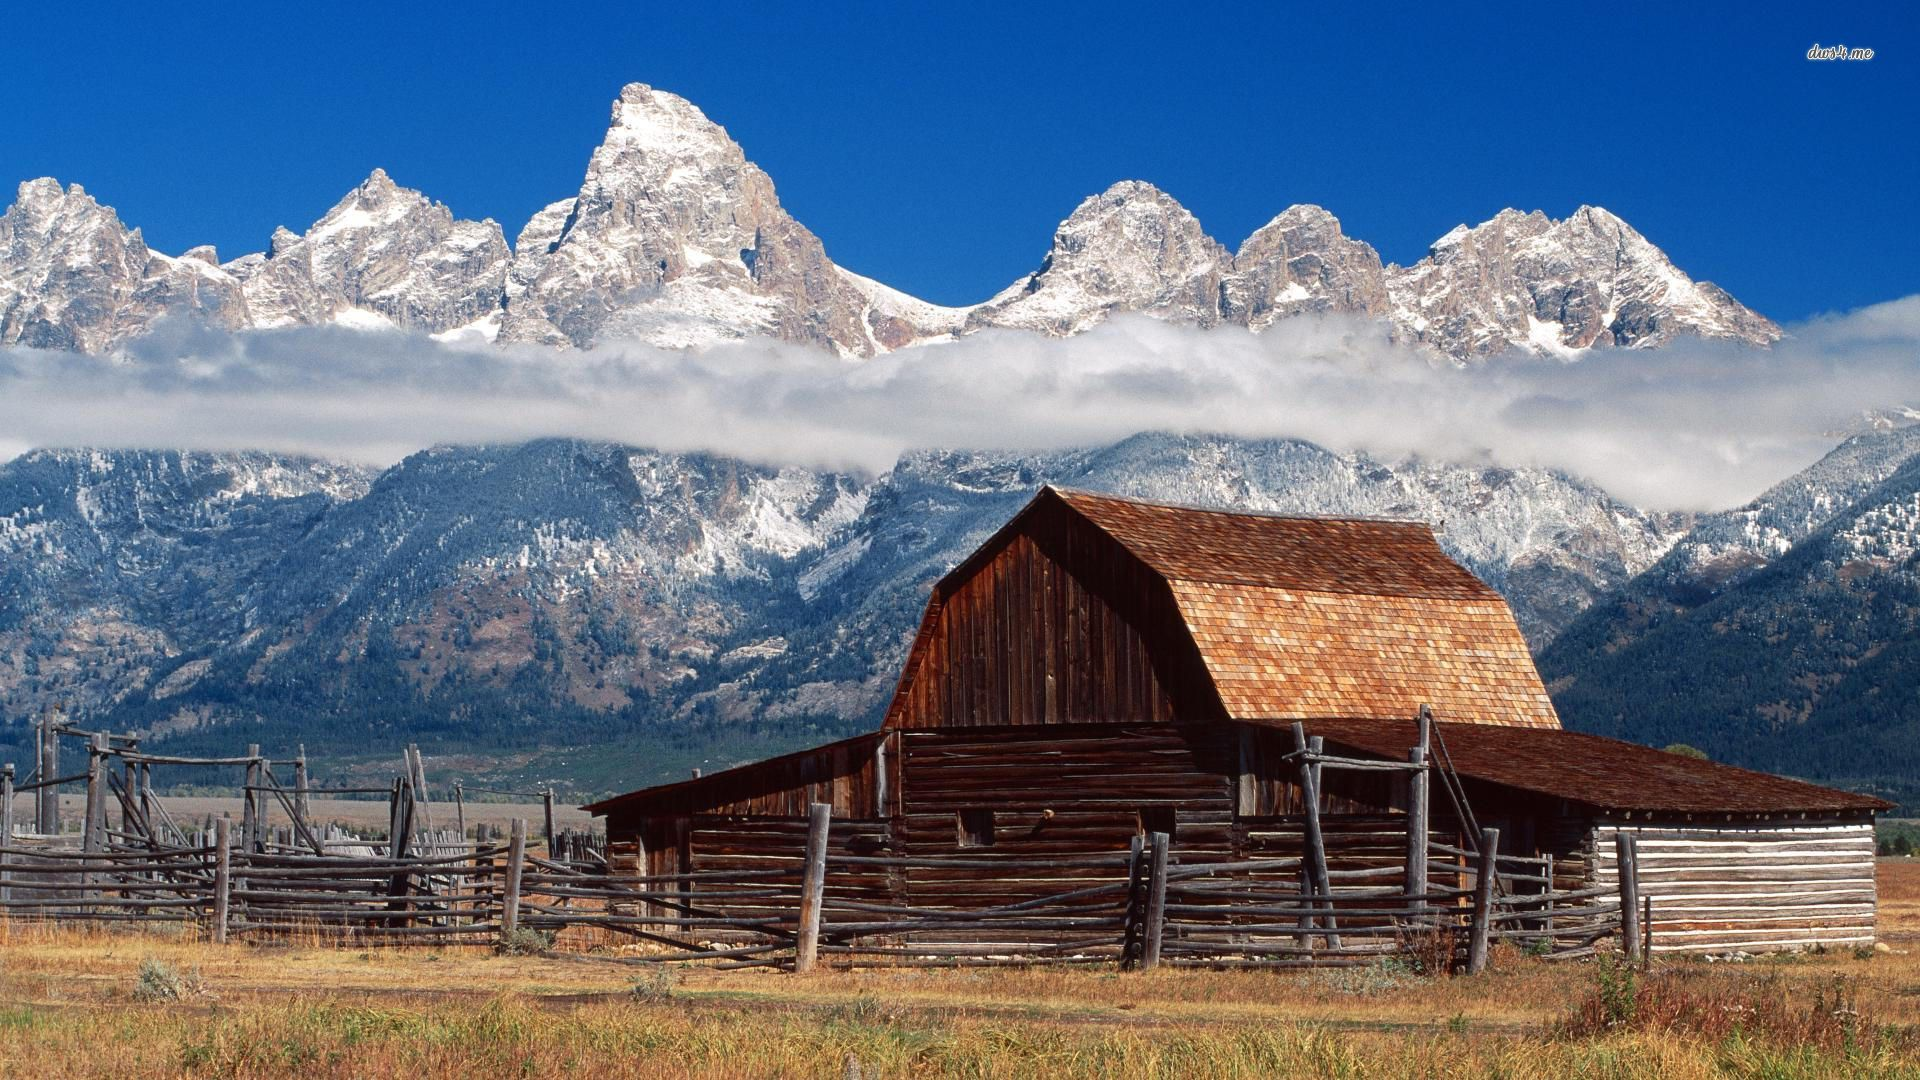 Teton Barn Jackson Hole Wyoming Nature Wallpaper #105085 - Resolution 1920x1080 px